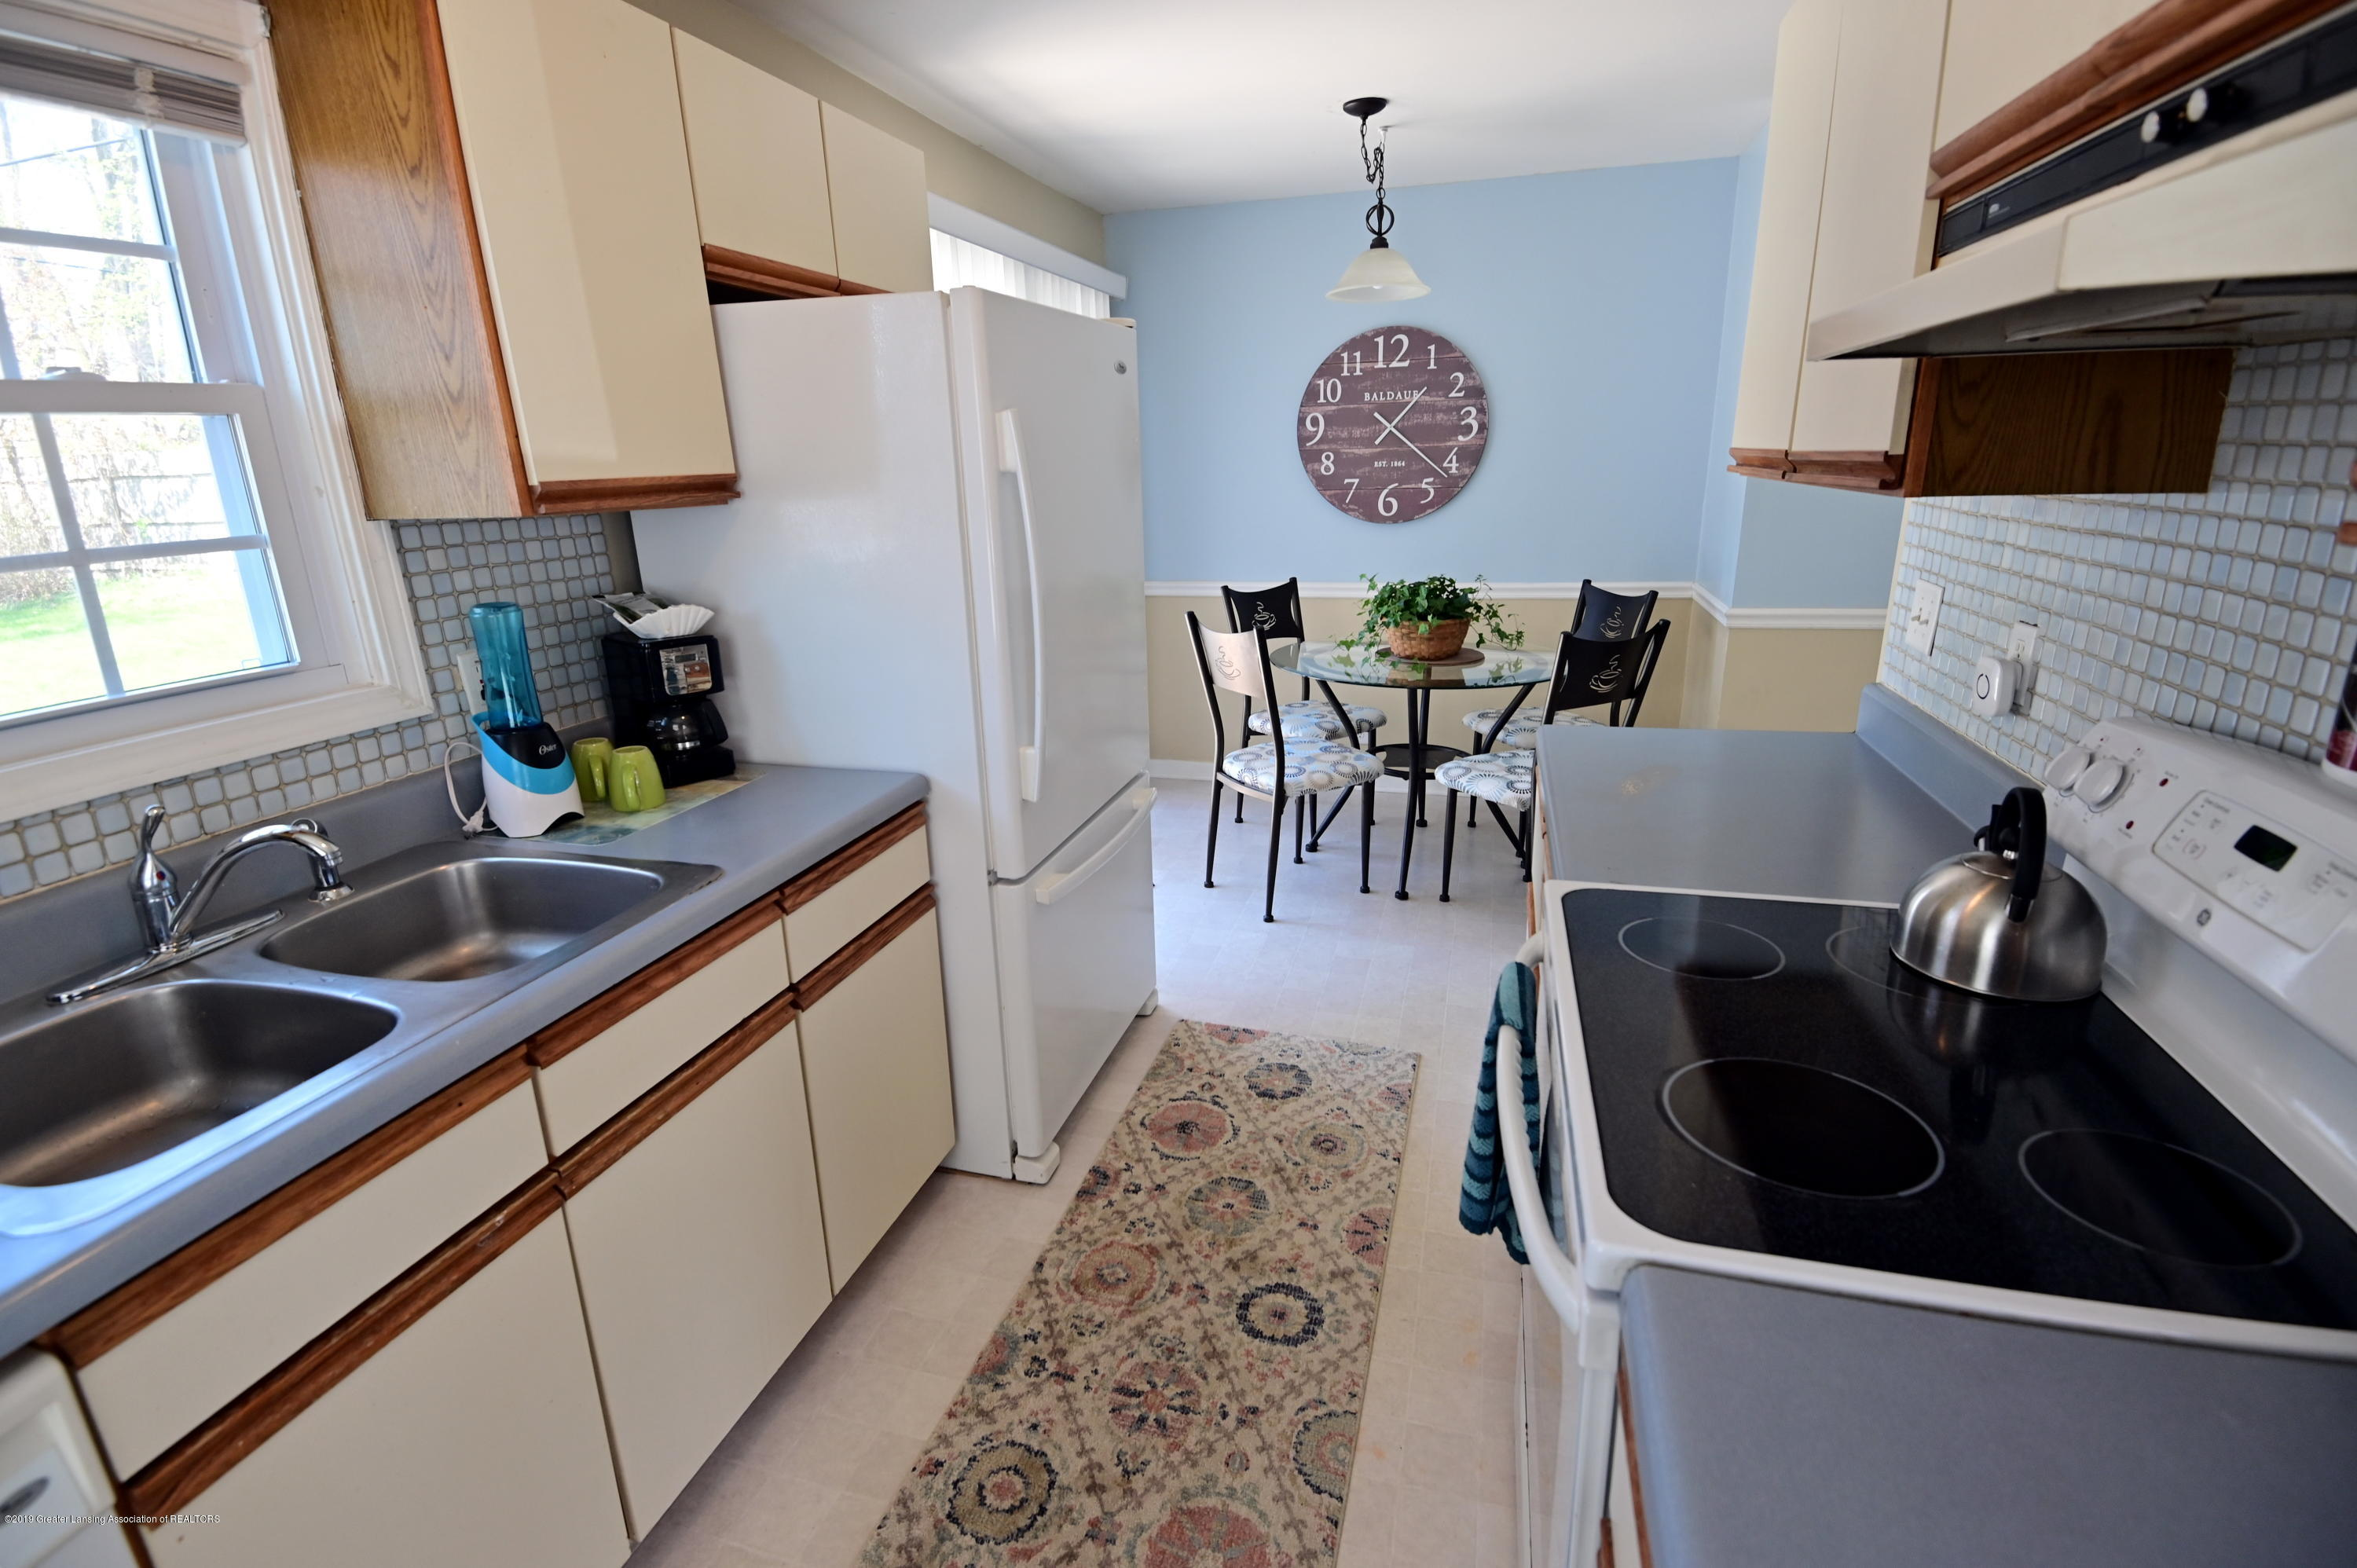 3310 Ellen Ave - Kitchen1 - 7